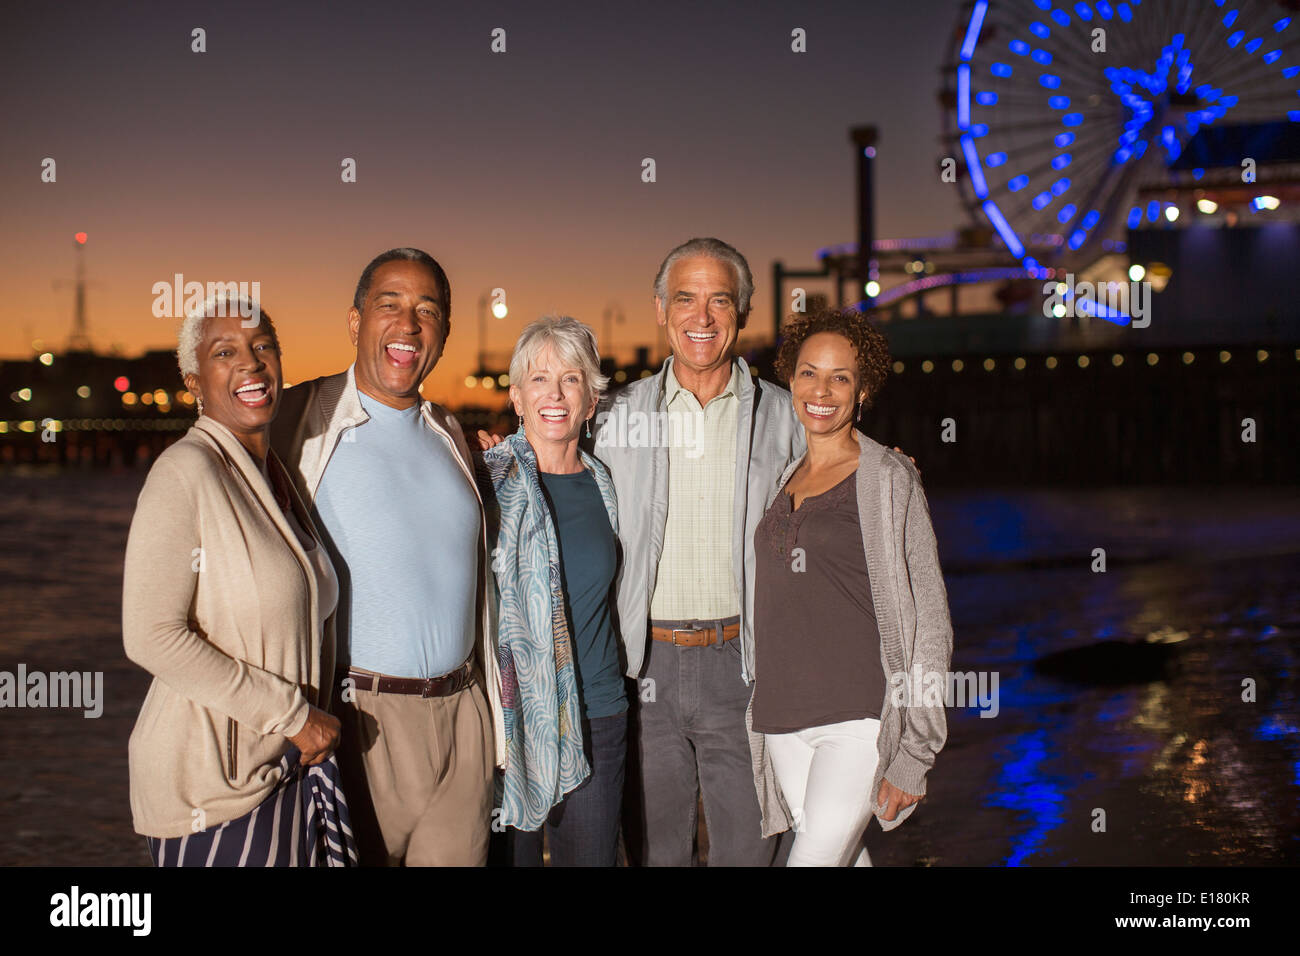 Portrait of senior friends on beach at night - Stock Image